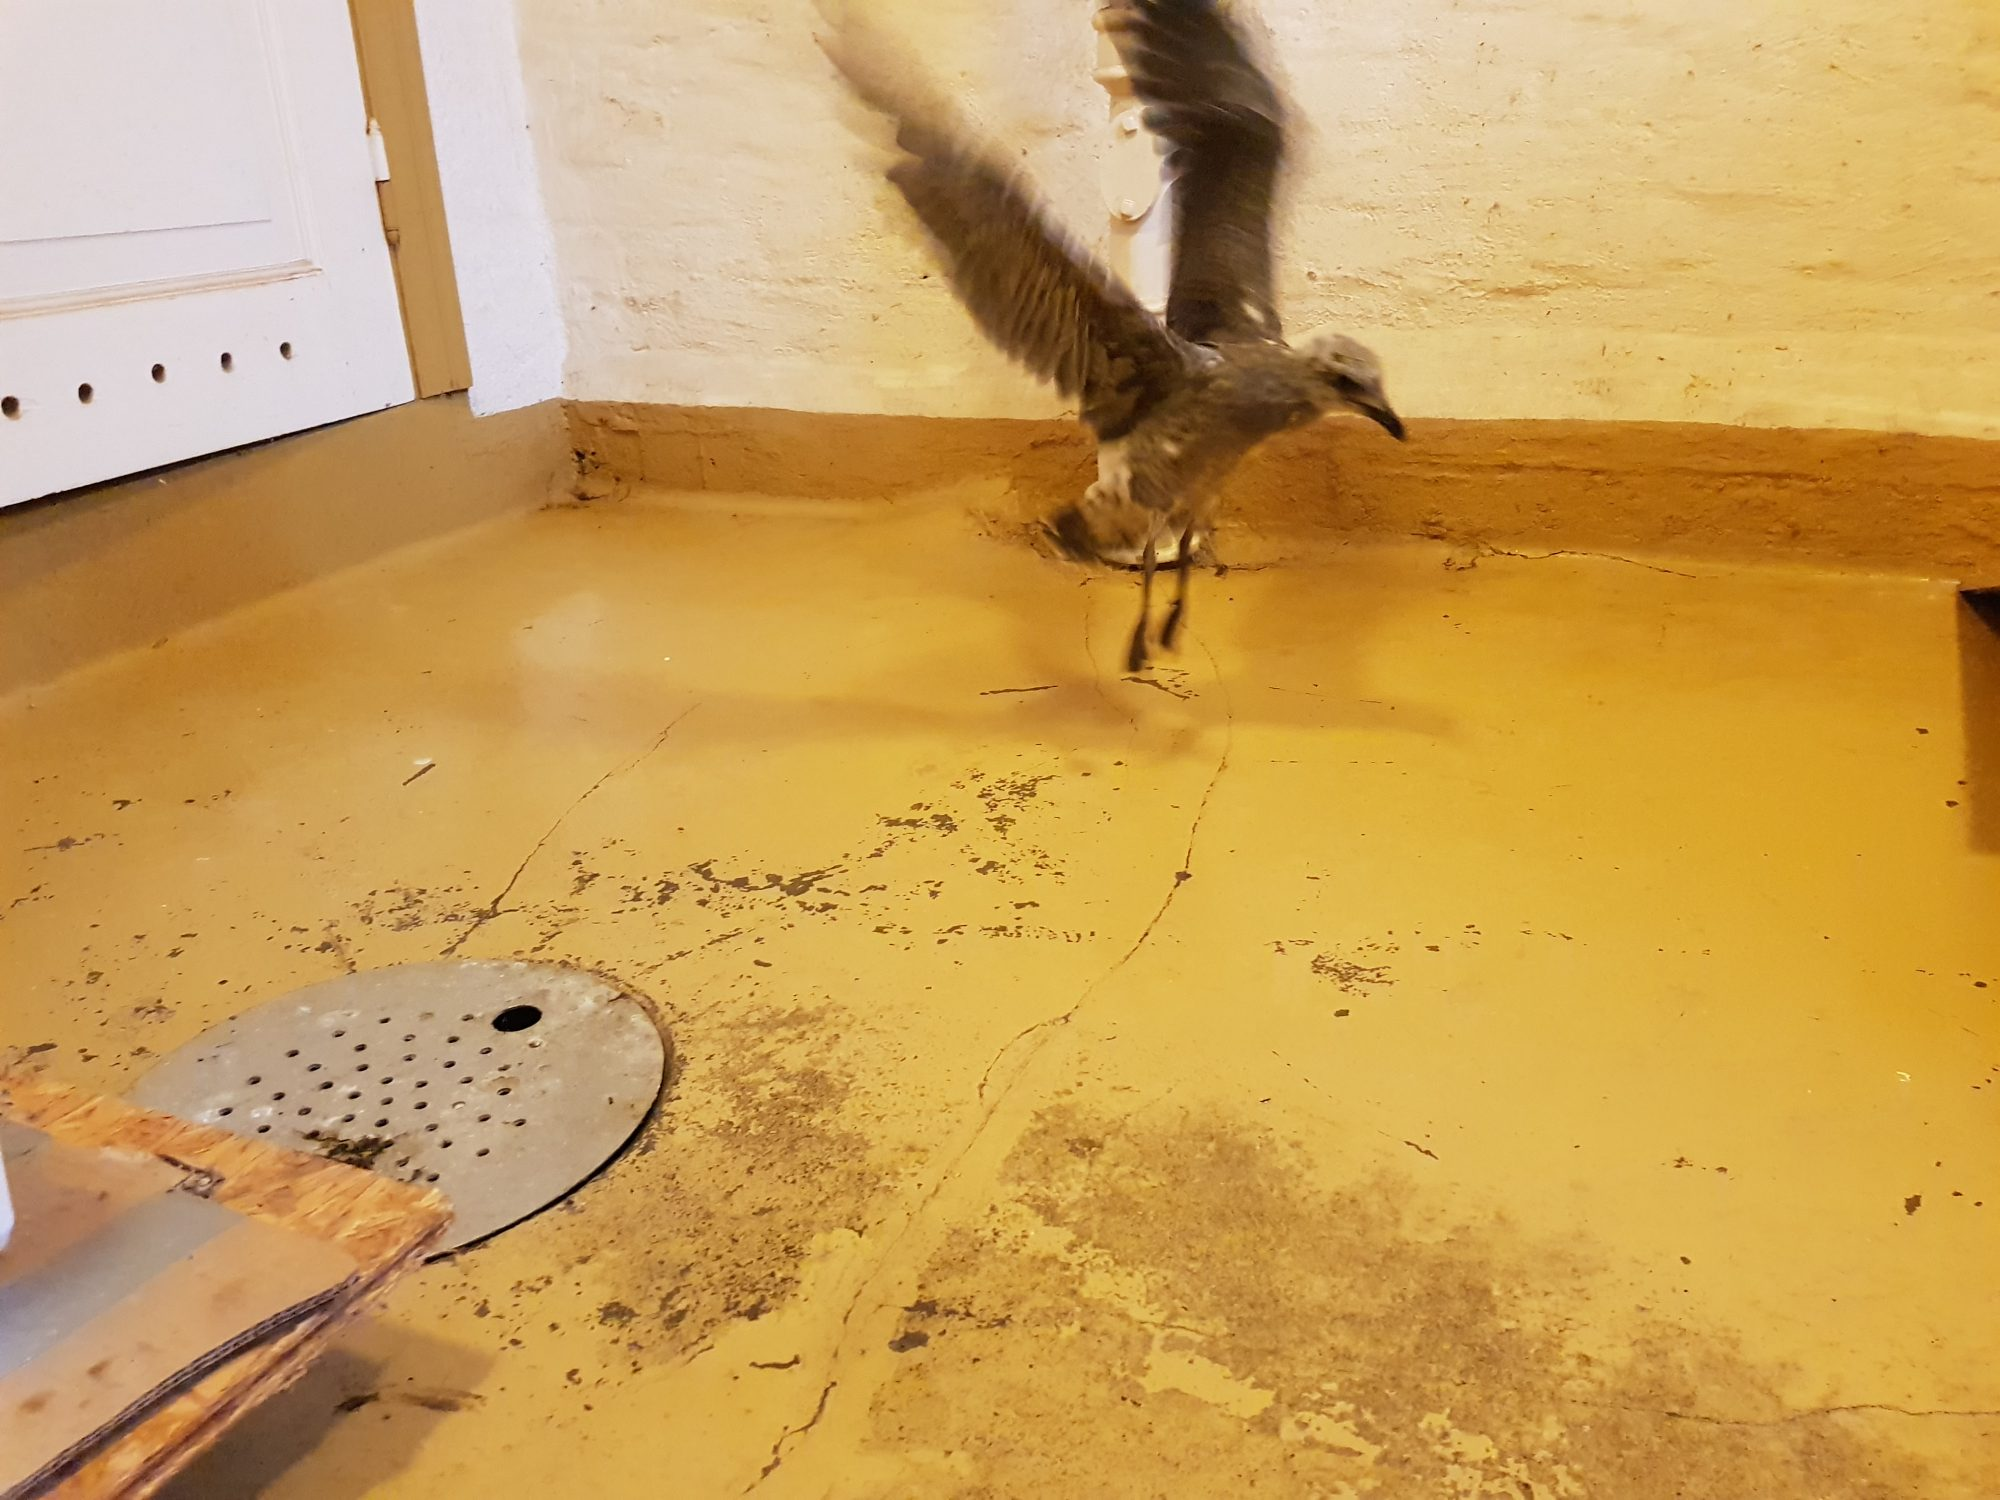 A photo of a bird in a basement, flapping his wings in an attempt to fly.